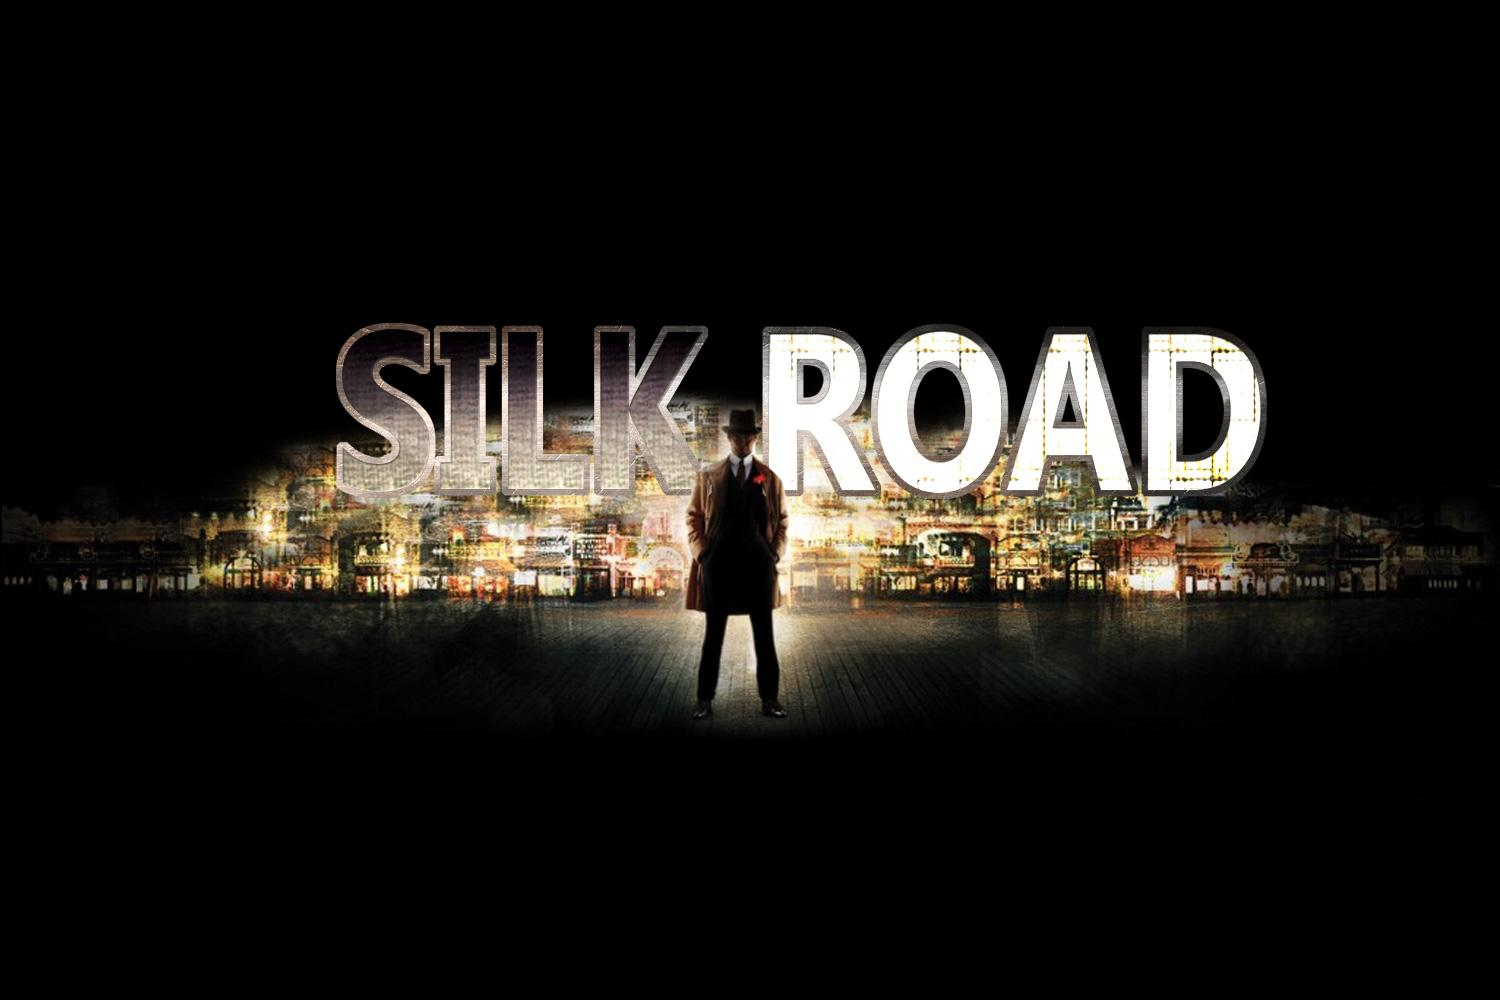 Silk Road Movie To Be Written By Shutter Island Author